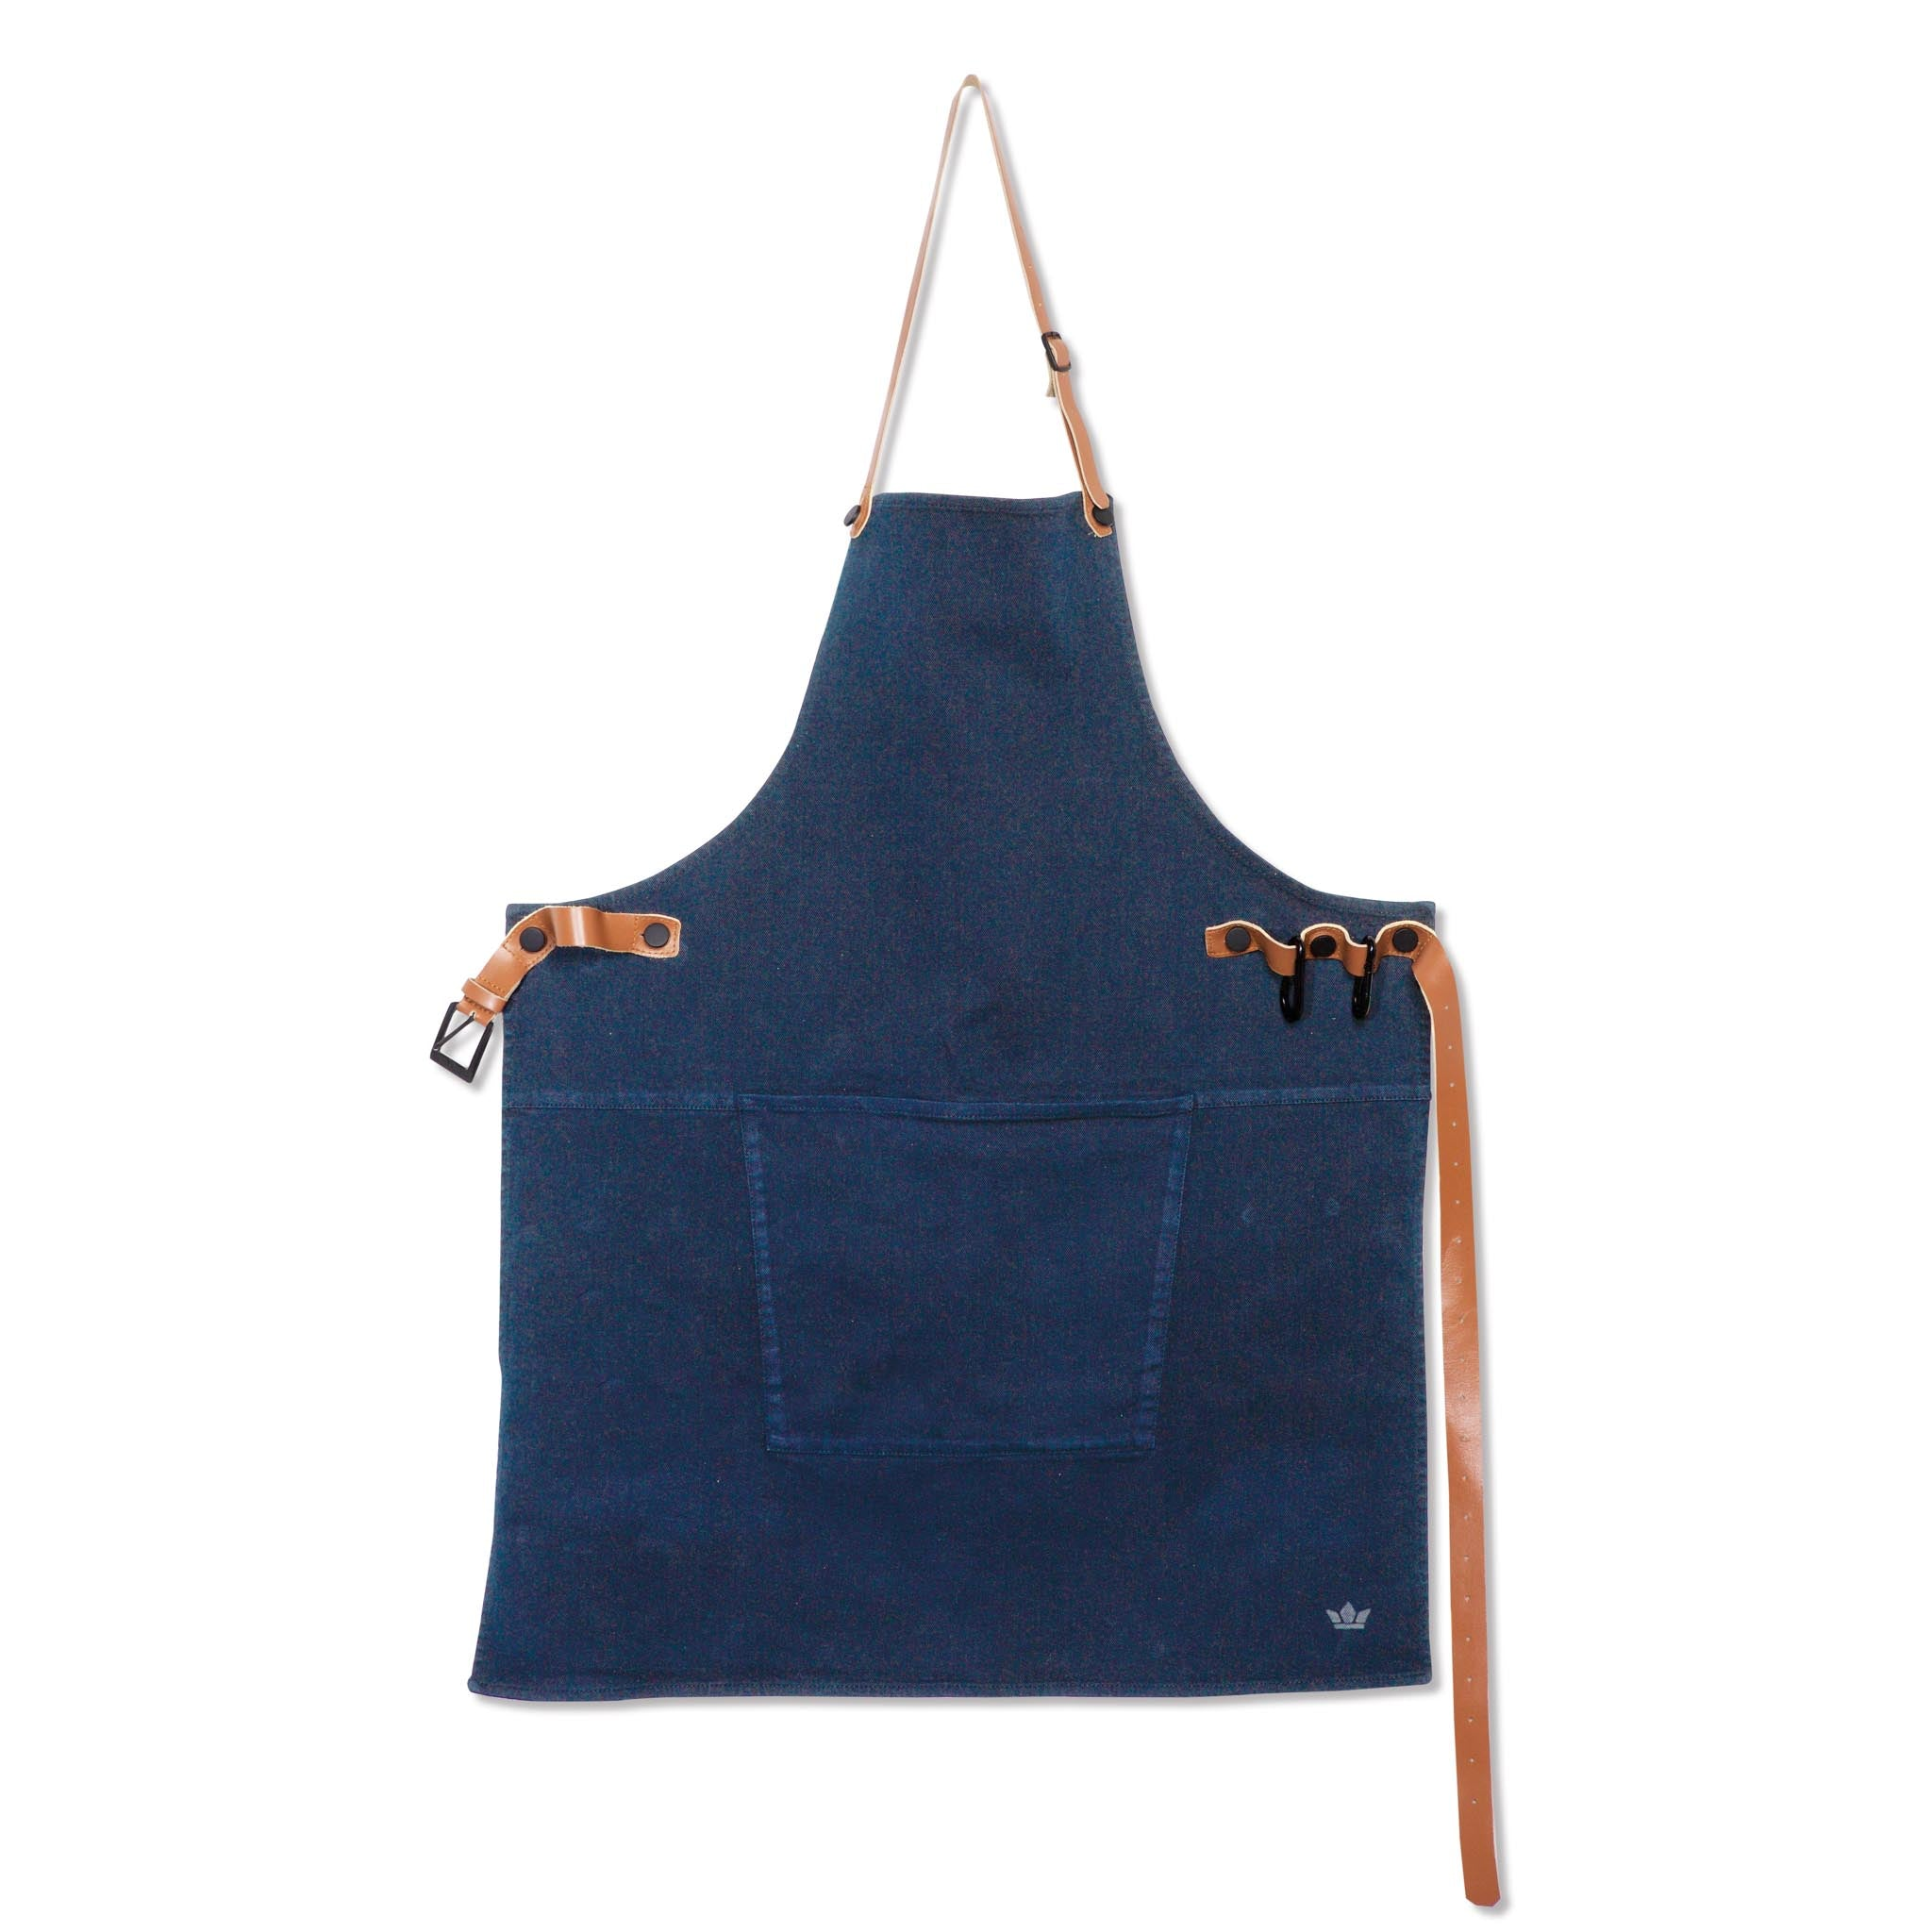 Dutchdeluxes Canvas BBQ Apron in Dark Blue Cookware Kitchen Clothing